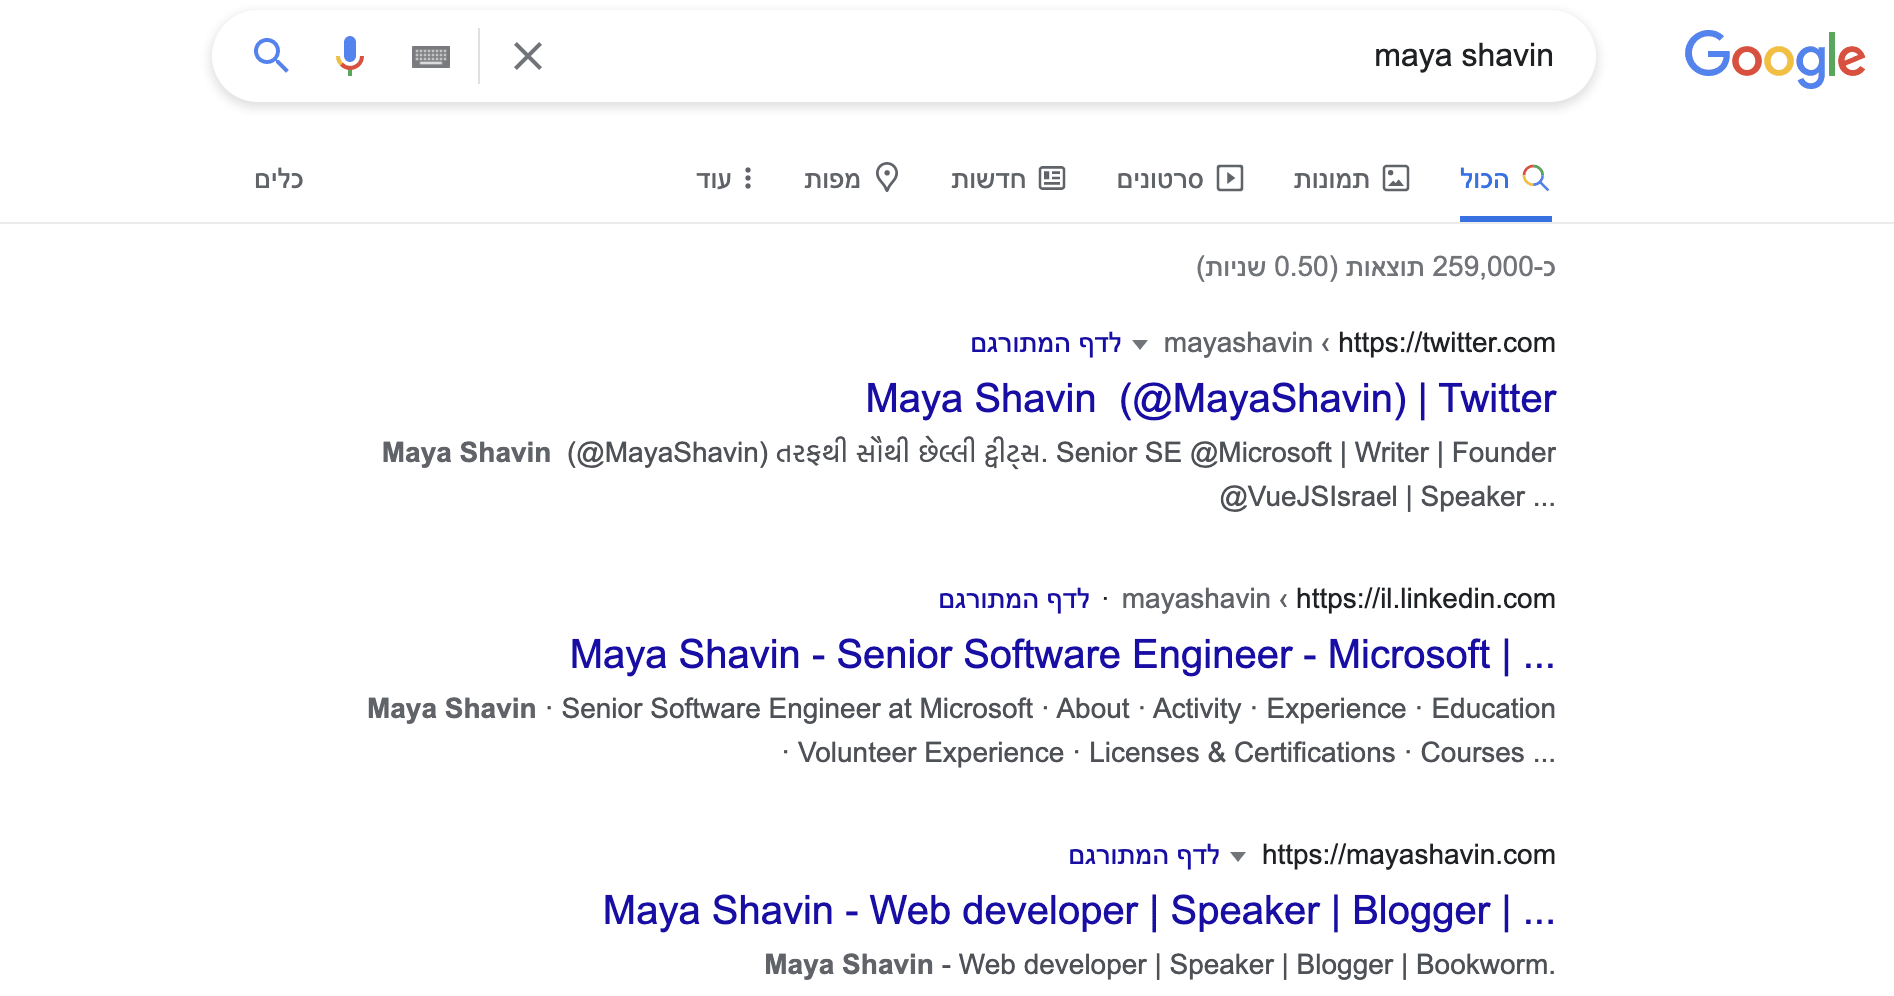 Example of searching for Maya Shavin on Google